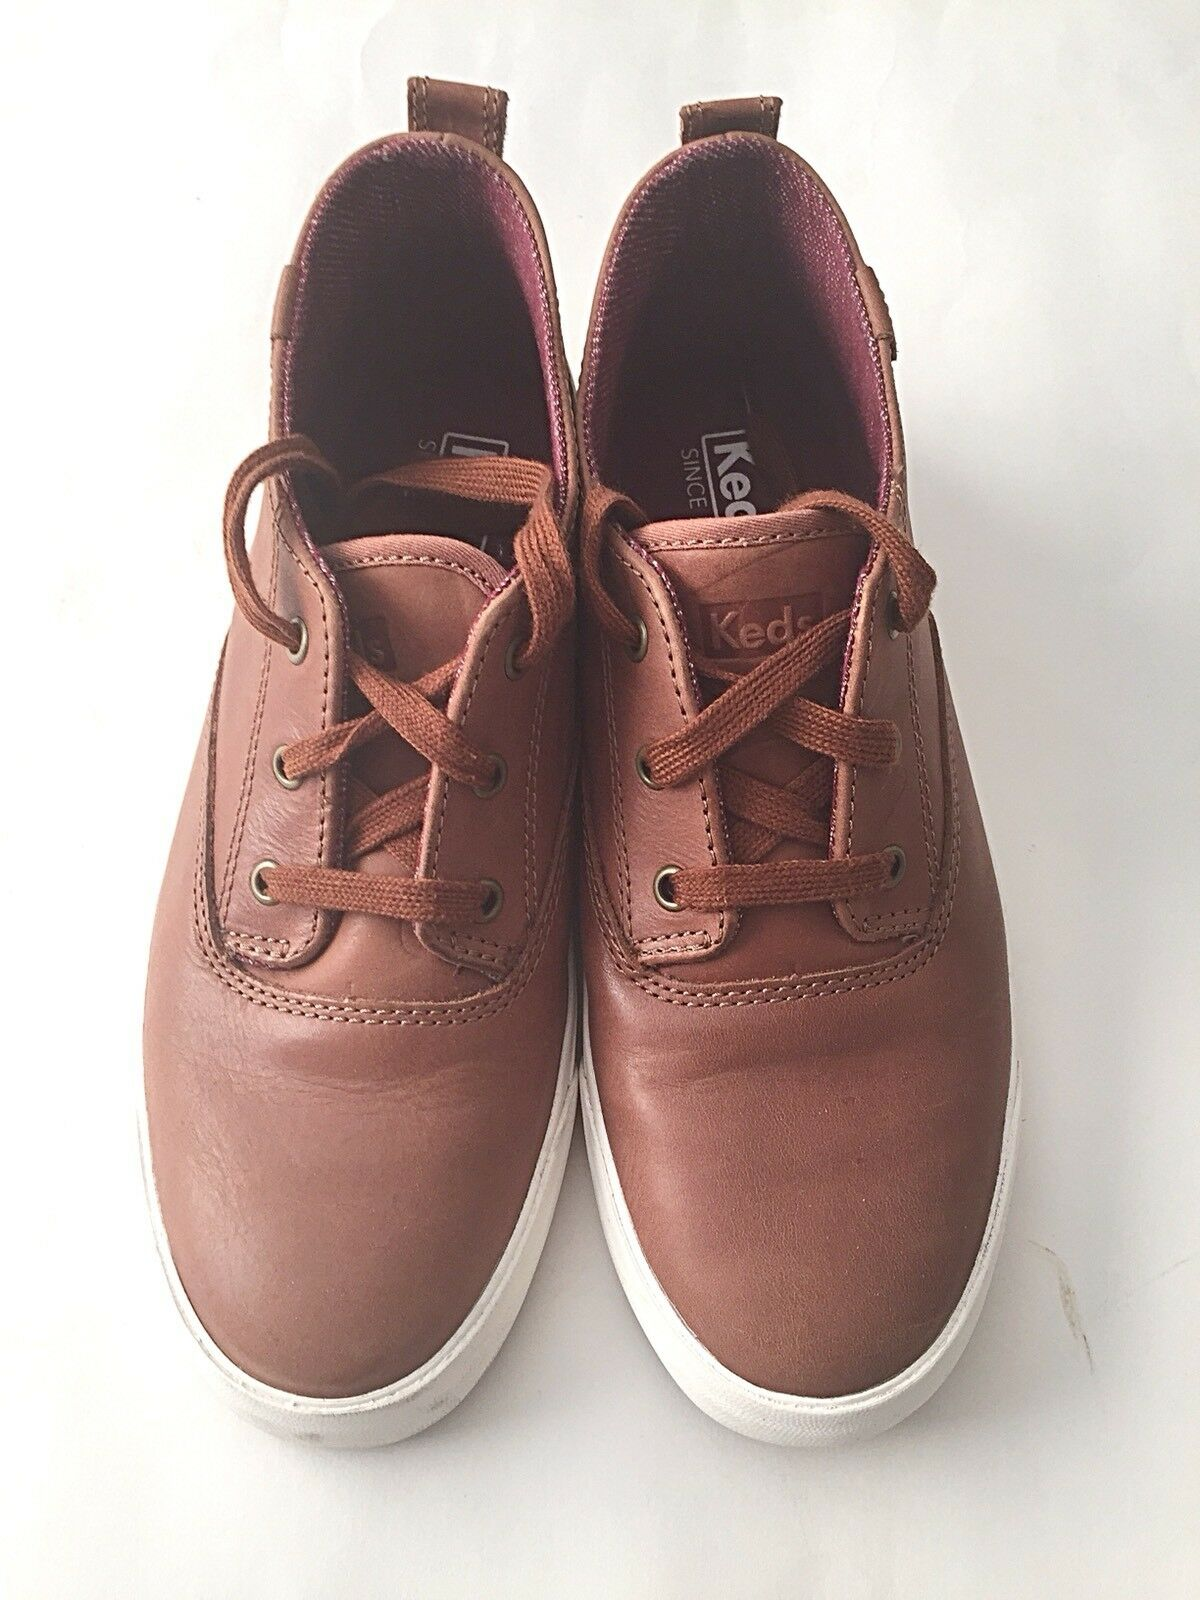 KEDS Woman Boot Size 8 Brown  Leather